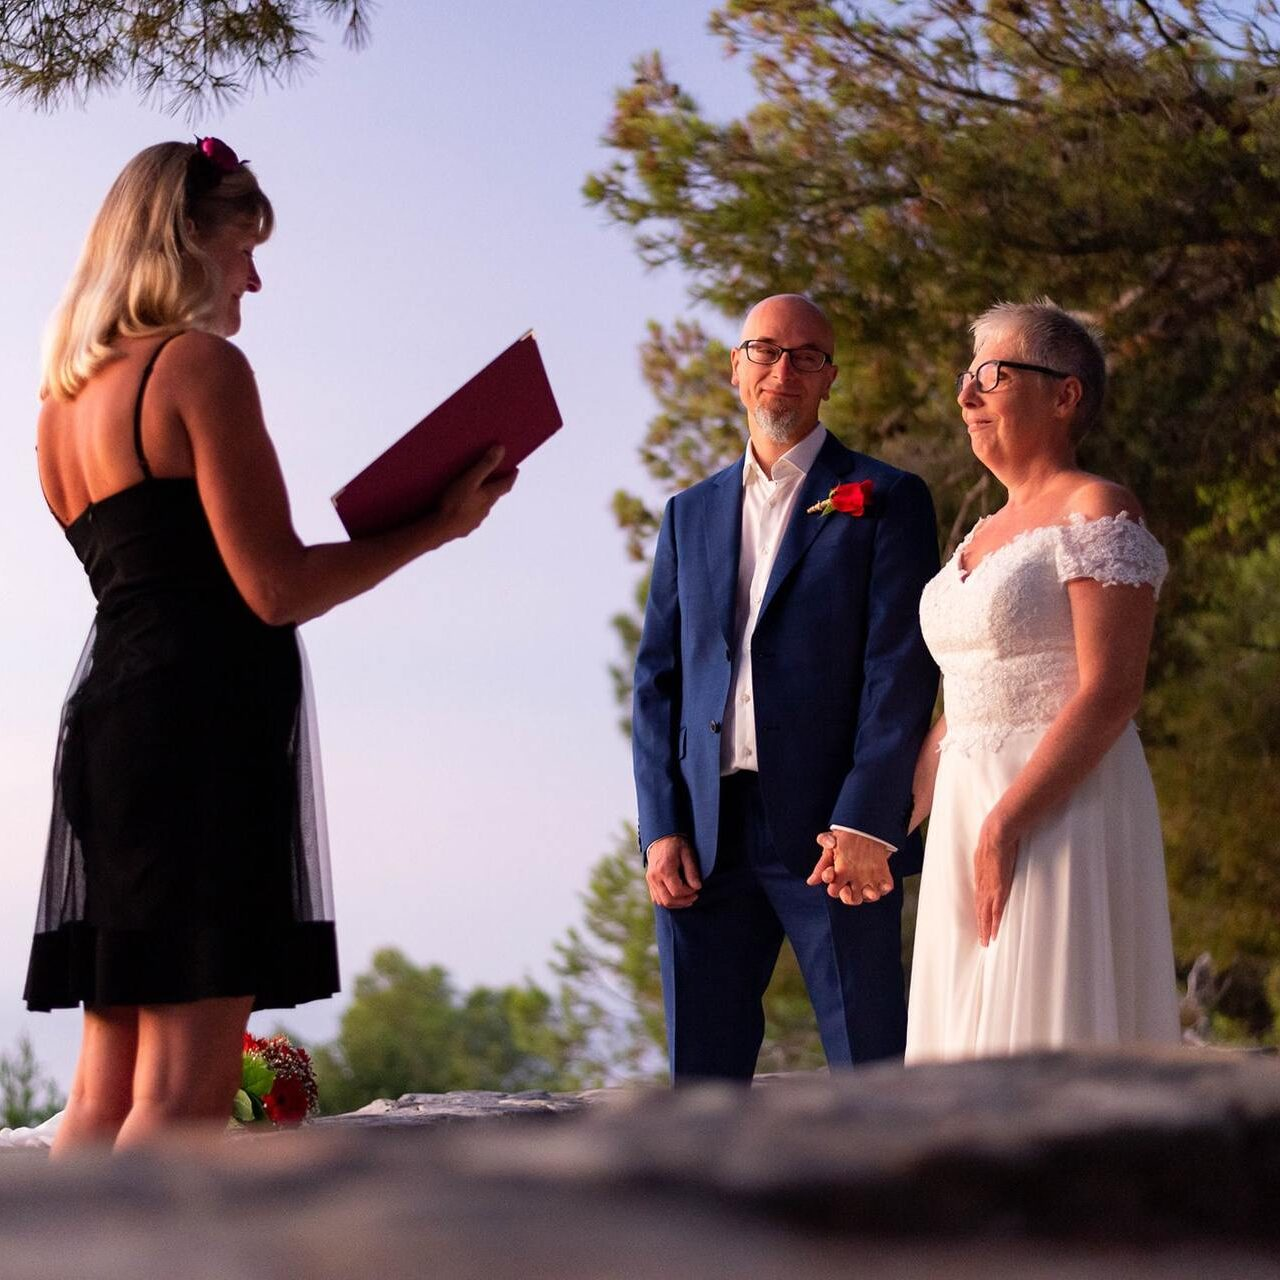 SDuggan-photgraphy-sunrise-vow-renewal-Costa-Tropical-Spain-min